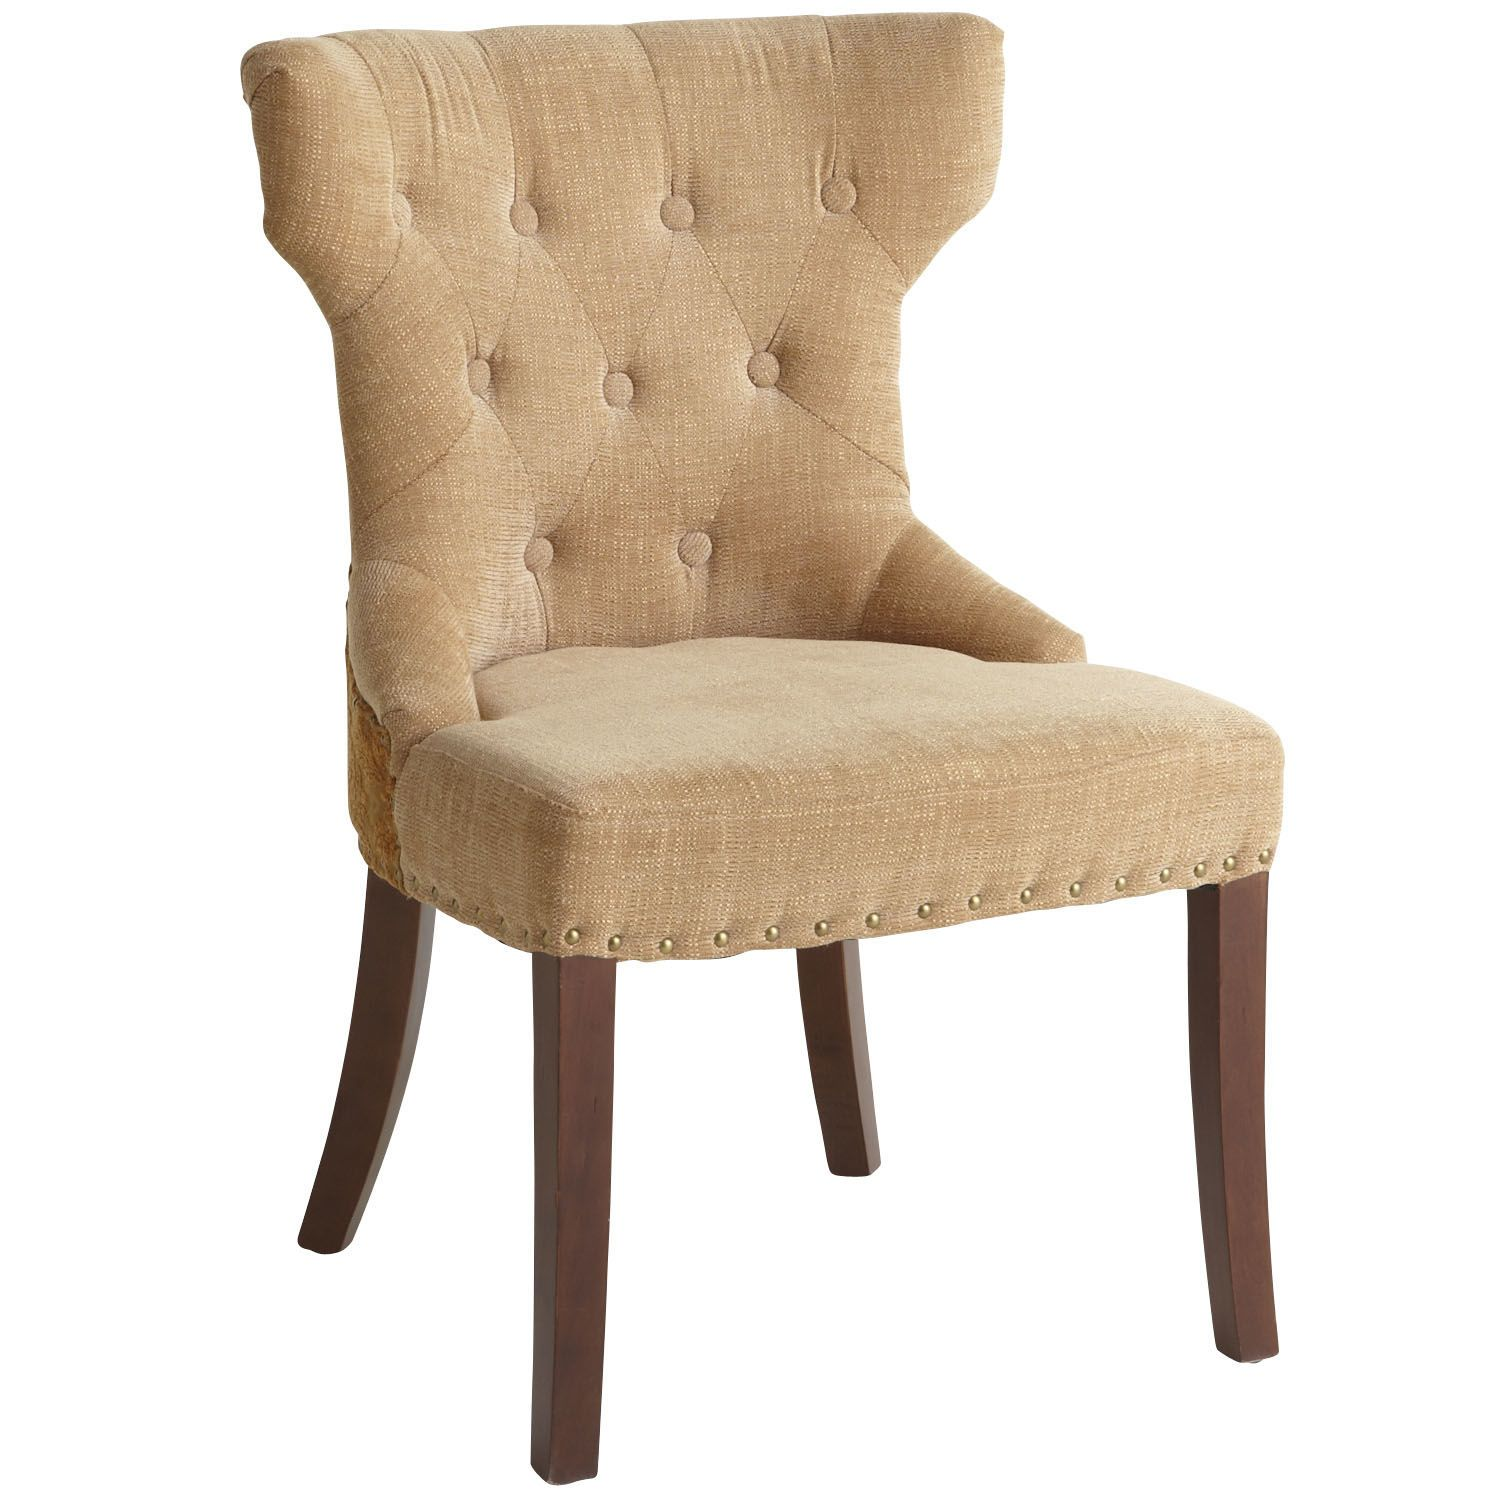 Hourglass dining chair gold damask pier 1 imports armchair hourglass dining chair gold damask pier 1 imports dzzzfo